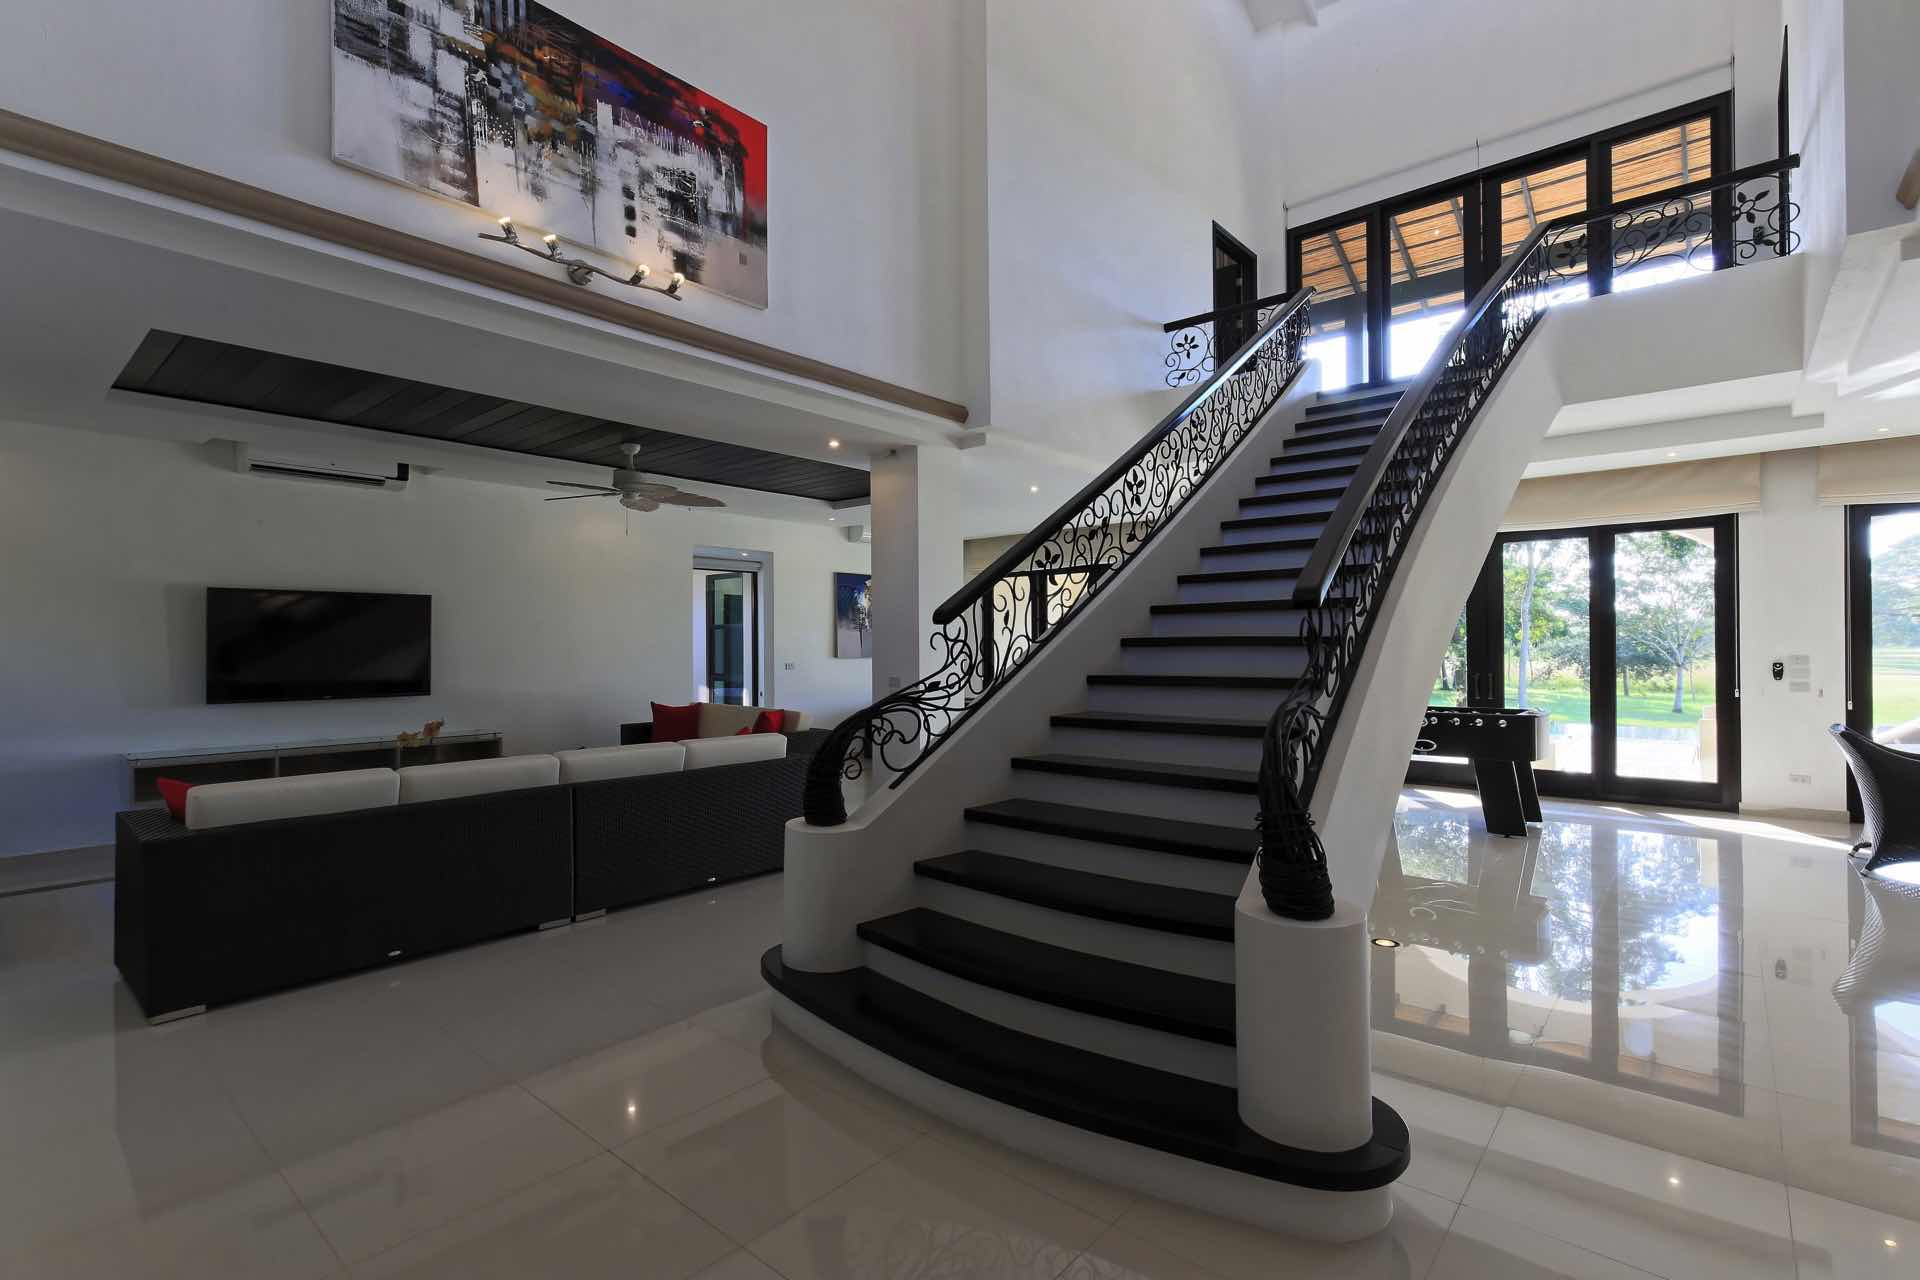 Staircase to upstair bedrooms and balcony